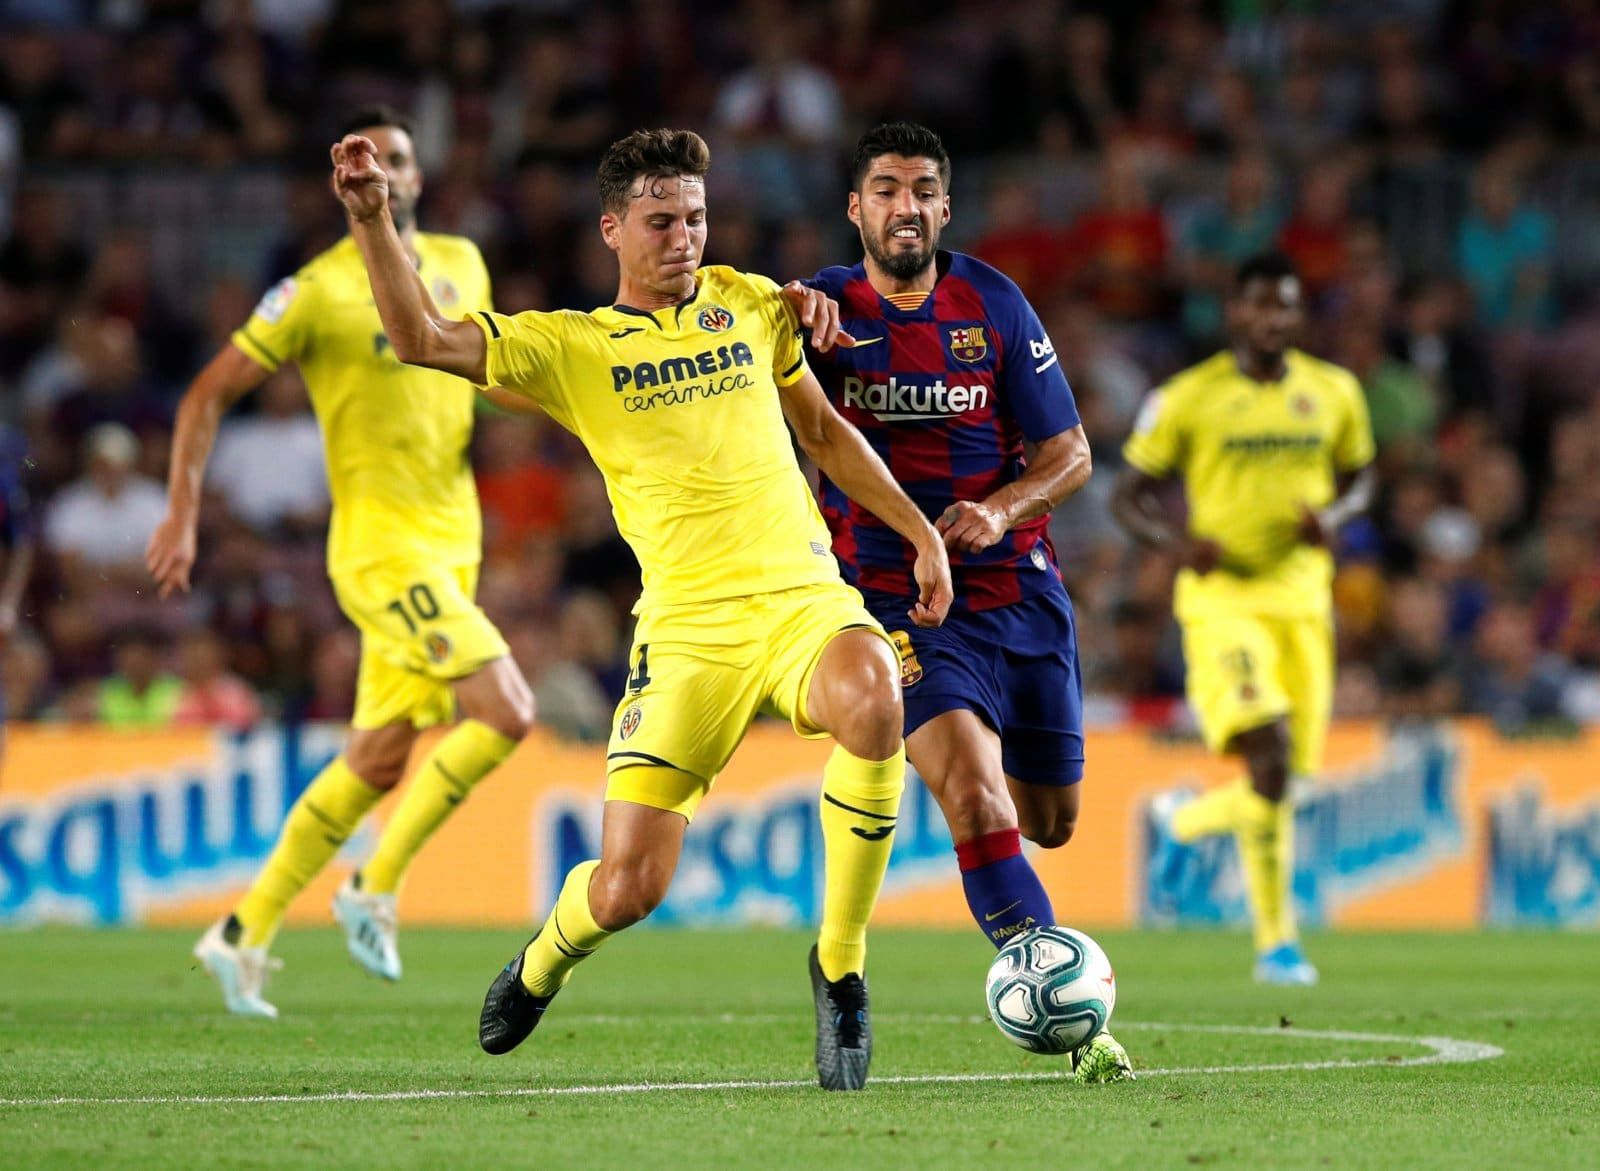 villarreal-enormous-title-attracted-to-manchester-united-summer-change.jpg